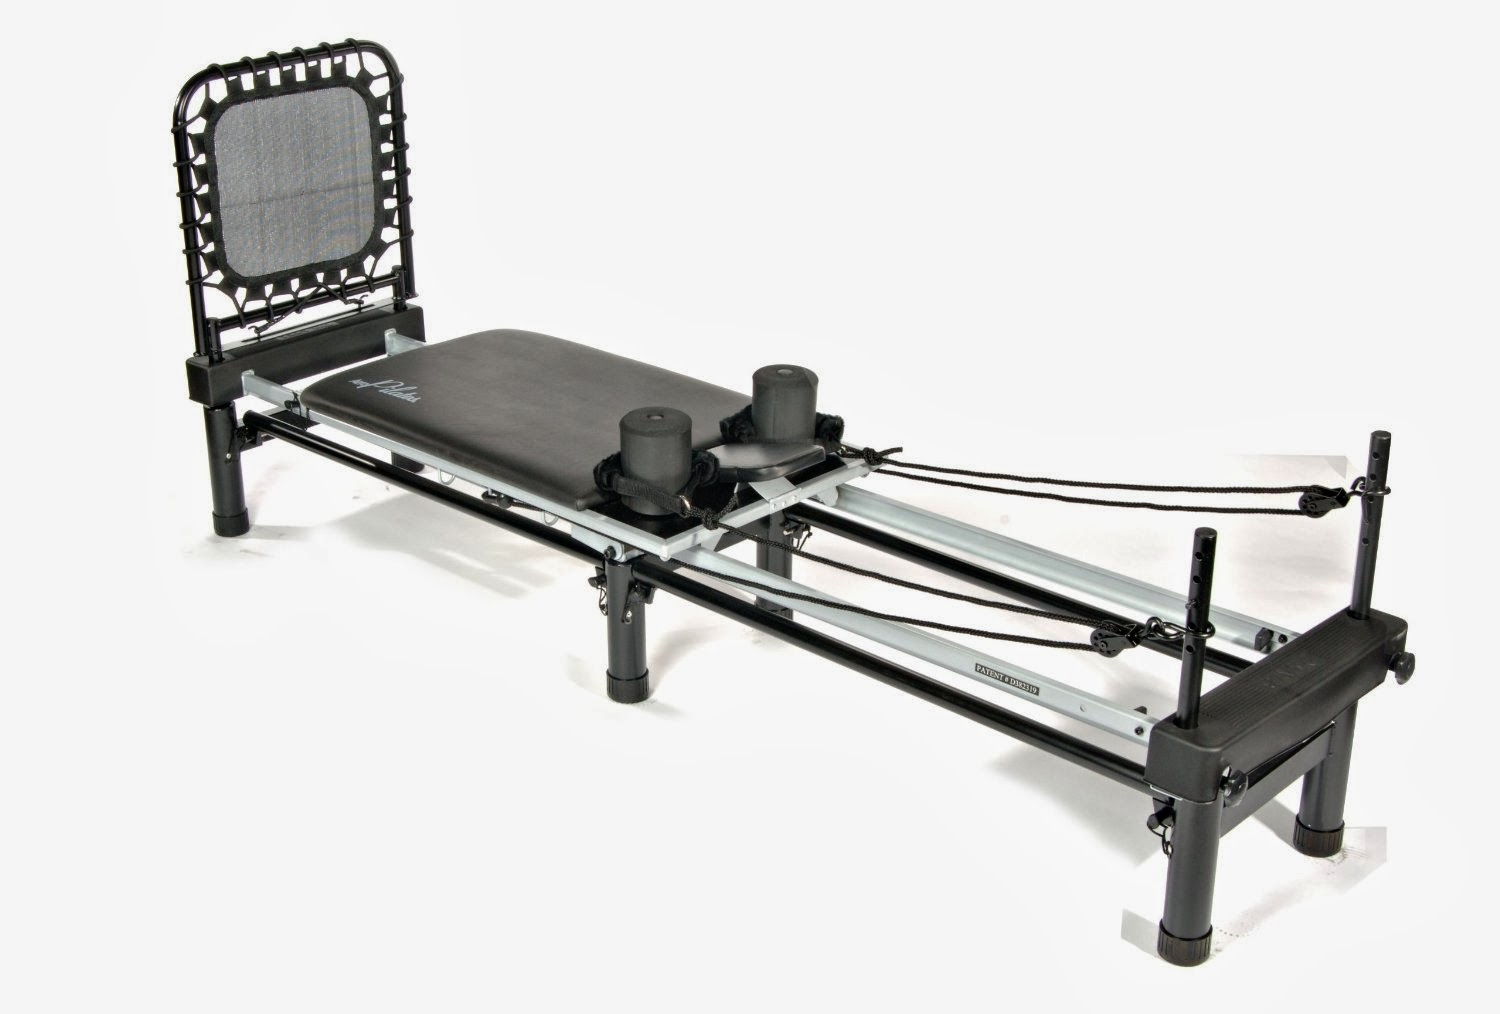 Stamina AeroPilates Reformer with Free-Form Cardio Rebounder, picture, review features & specifications